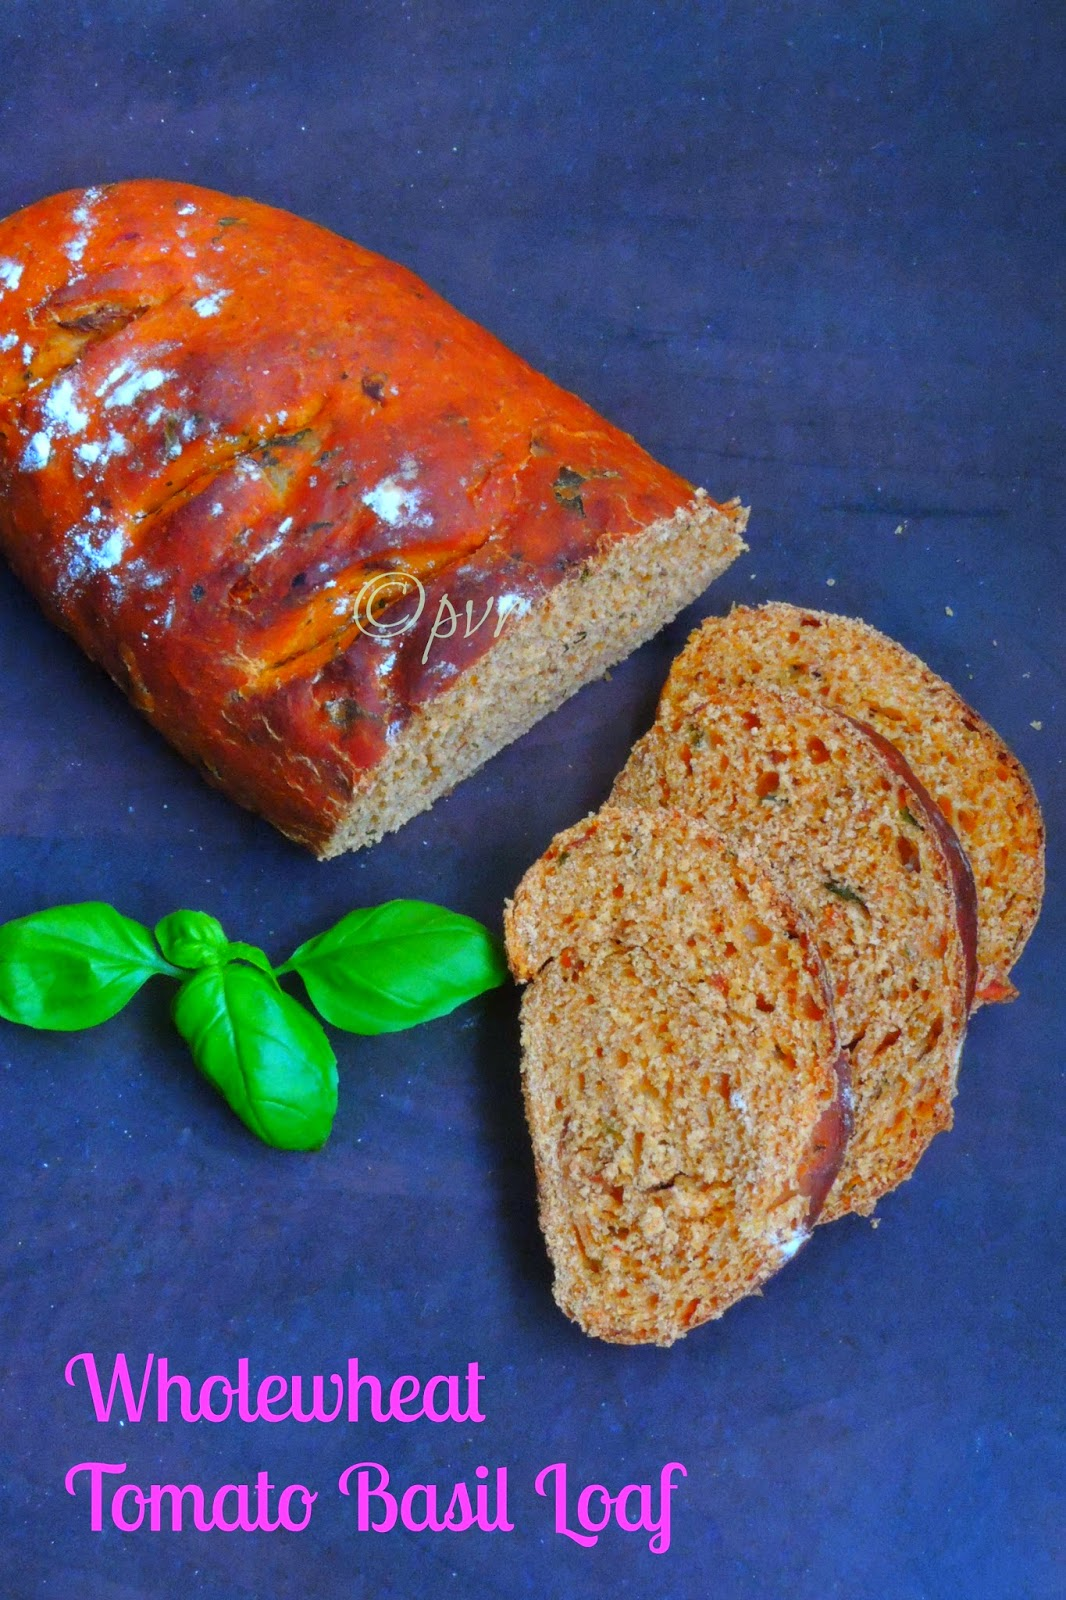 Tomato basil loaf, wholewheat Tomato Basil Loaf